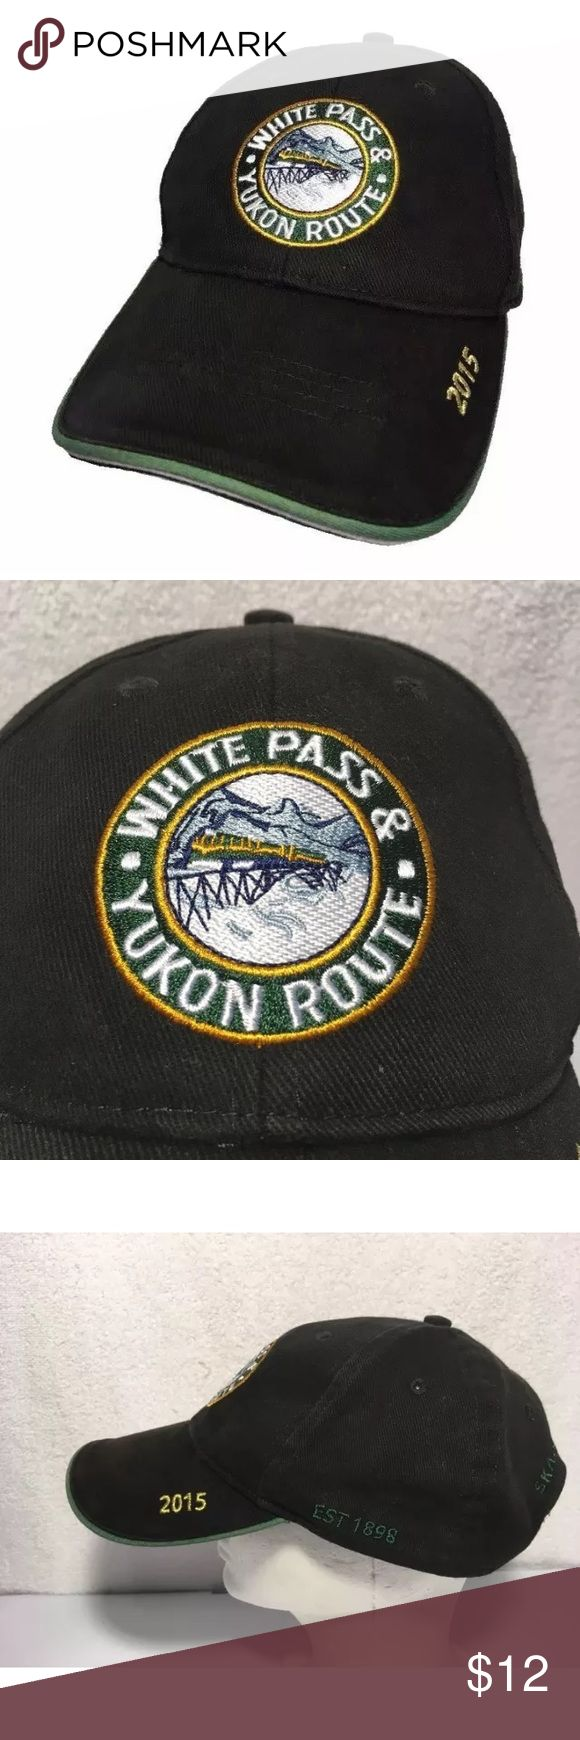 White Pass Yukon Route Skagway Alaska Hat railroad Very good condition pre owned White Pass Yukon Route 2015 in Skagway Alaska. Adjustable, black color, solid back. WP&Y Accessories Hats